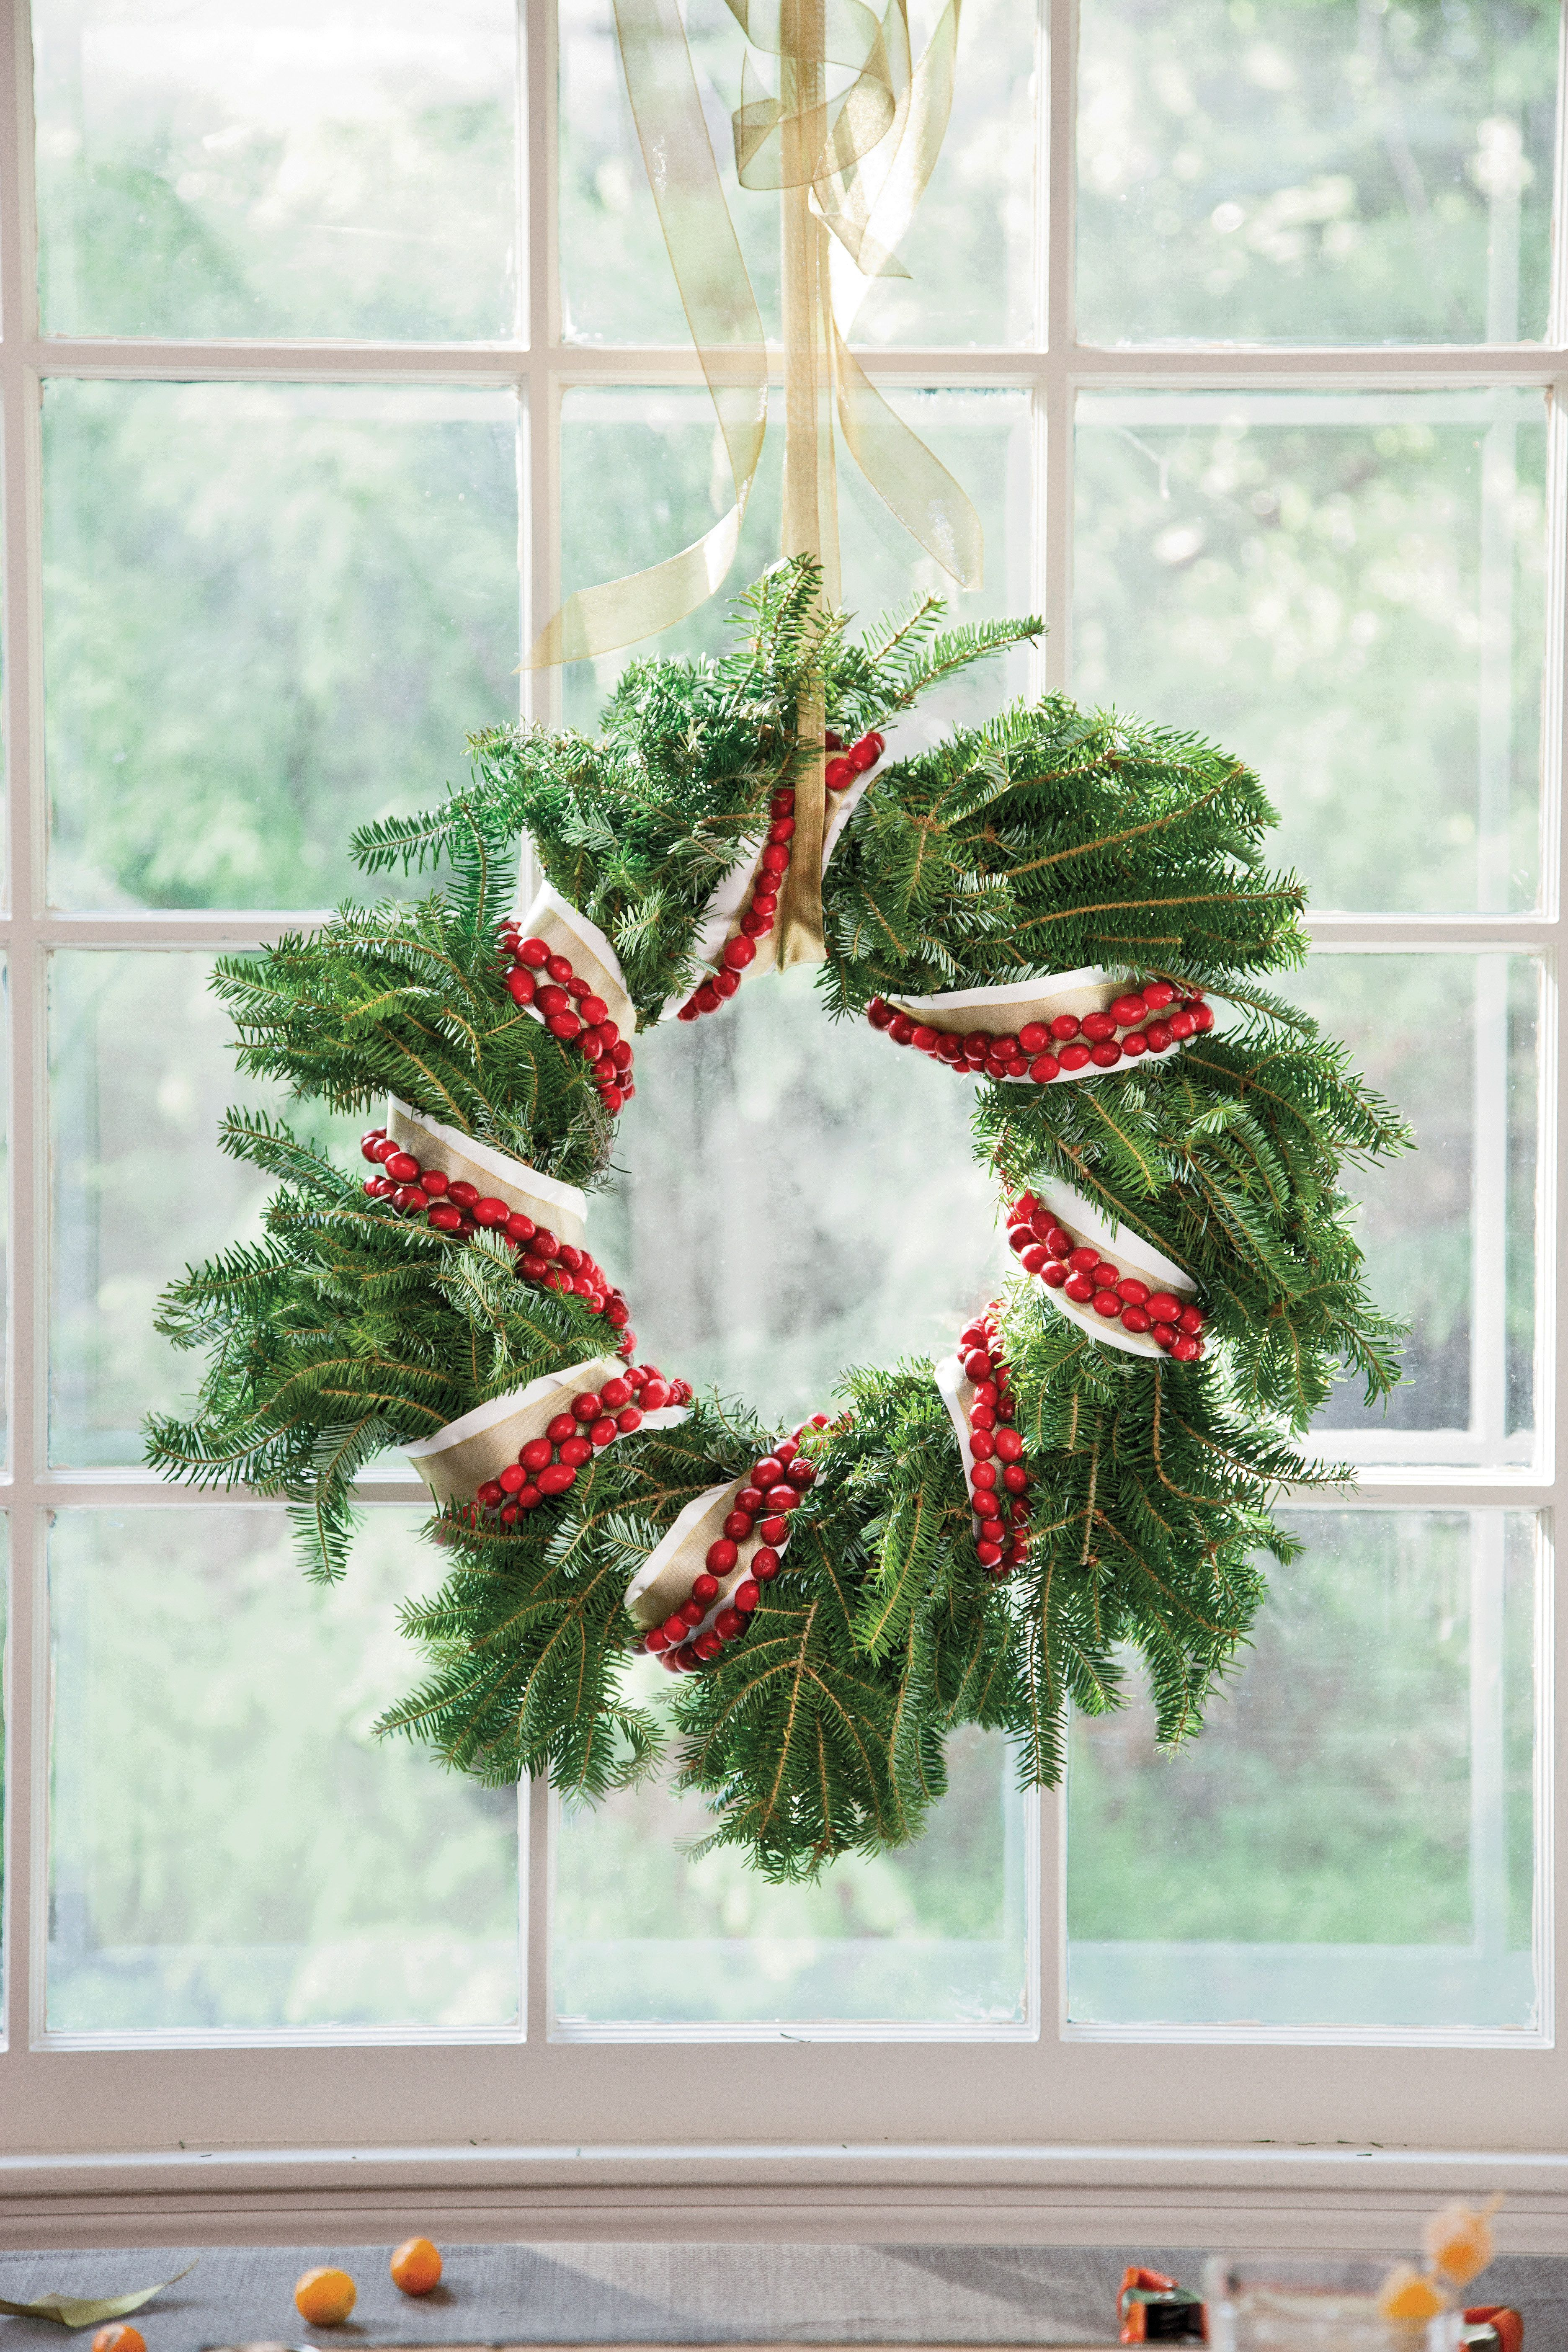 Our Favorite Tips for Christmas Window Decorations